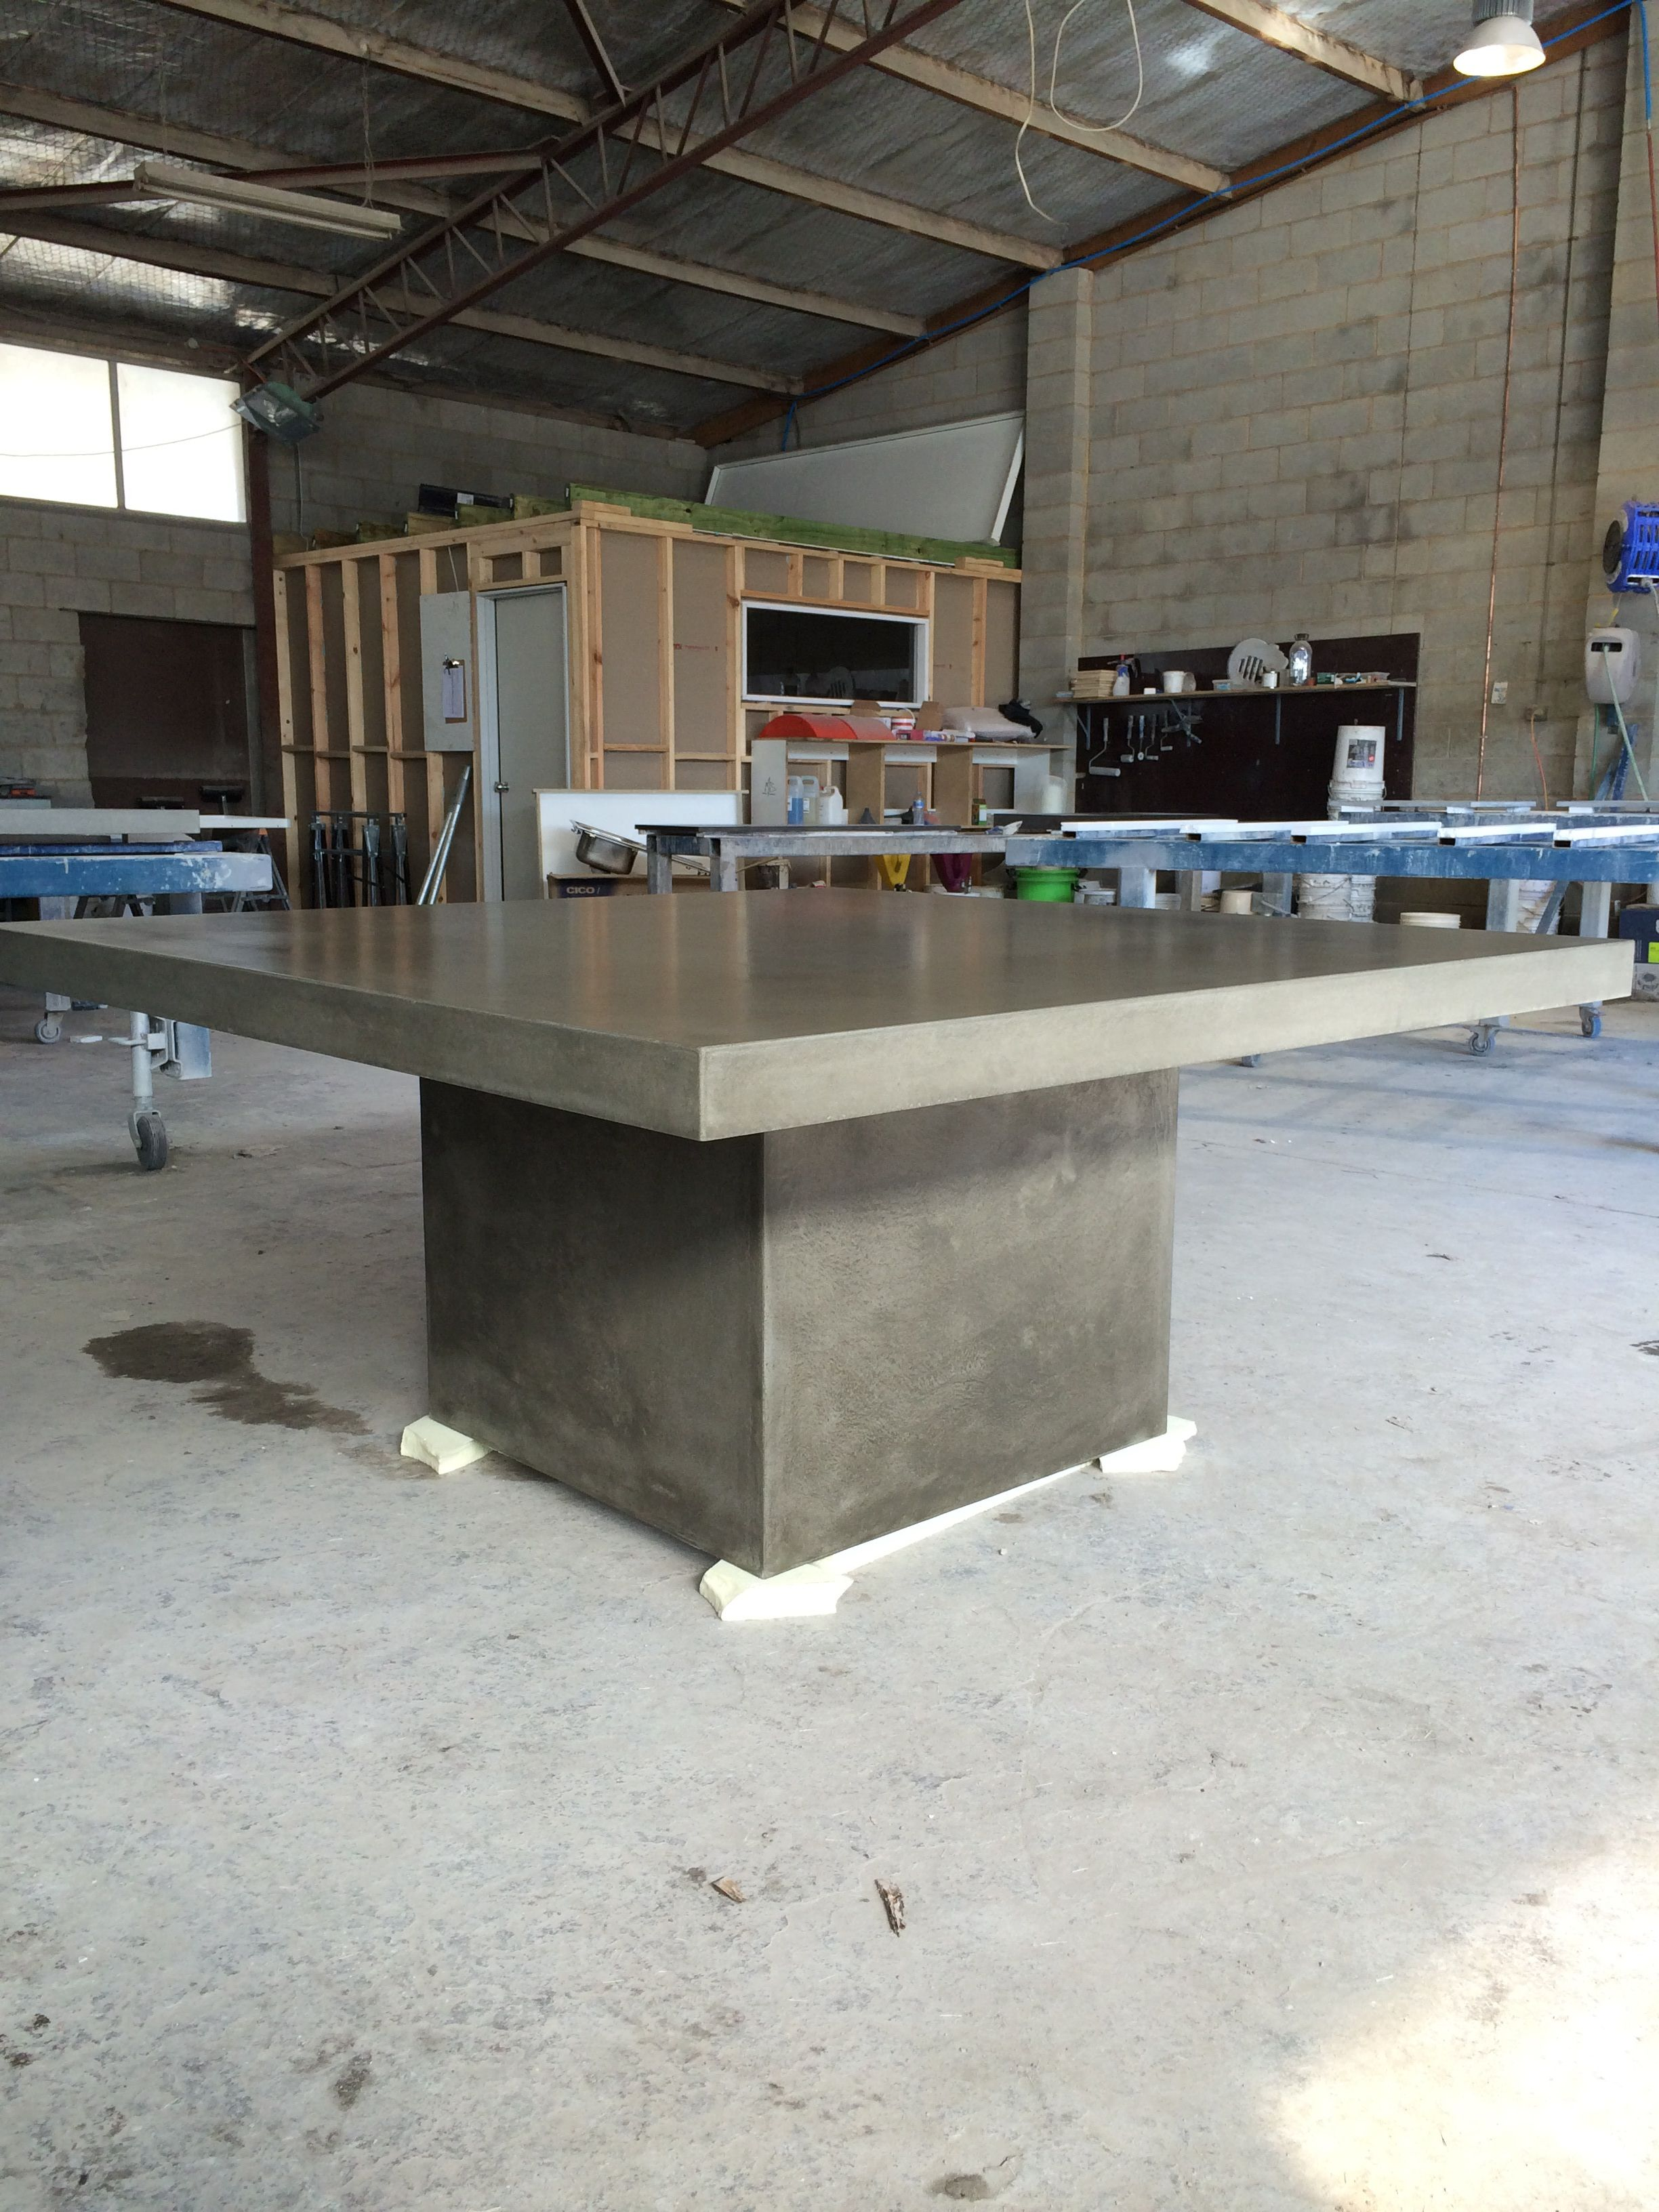 Polished Concrete Table By Mitchell Bink Concrete Design.